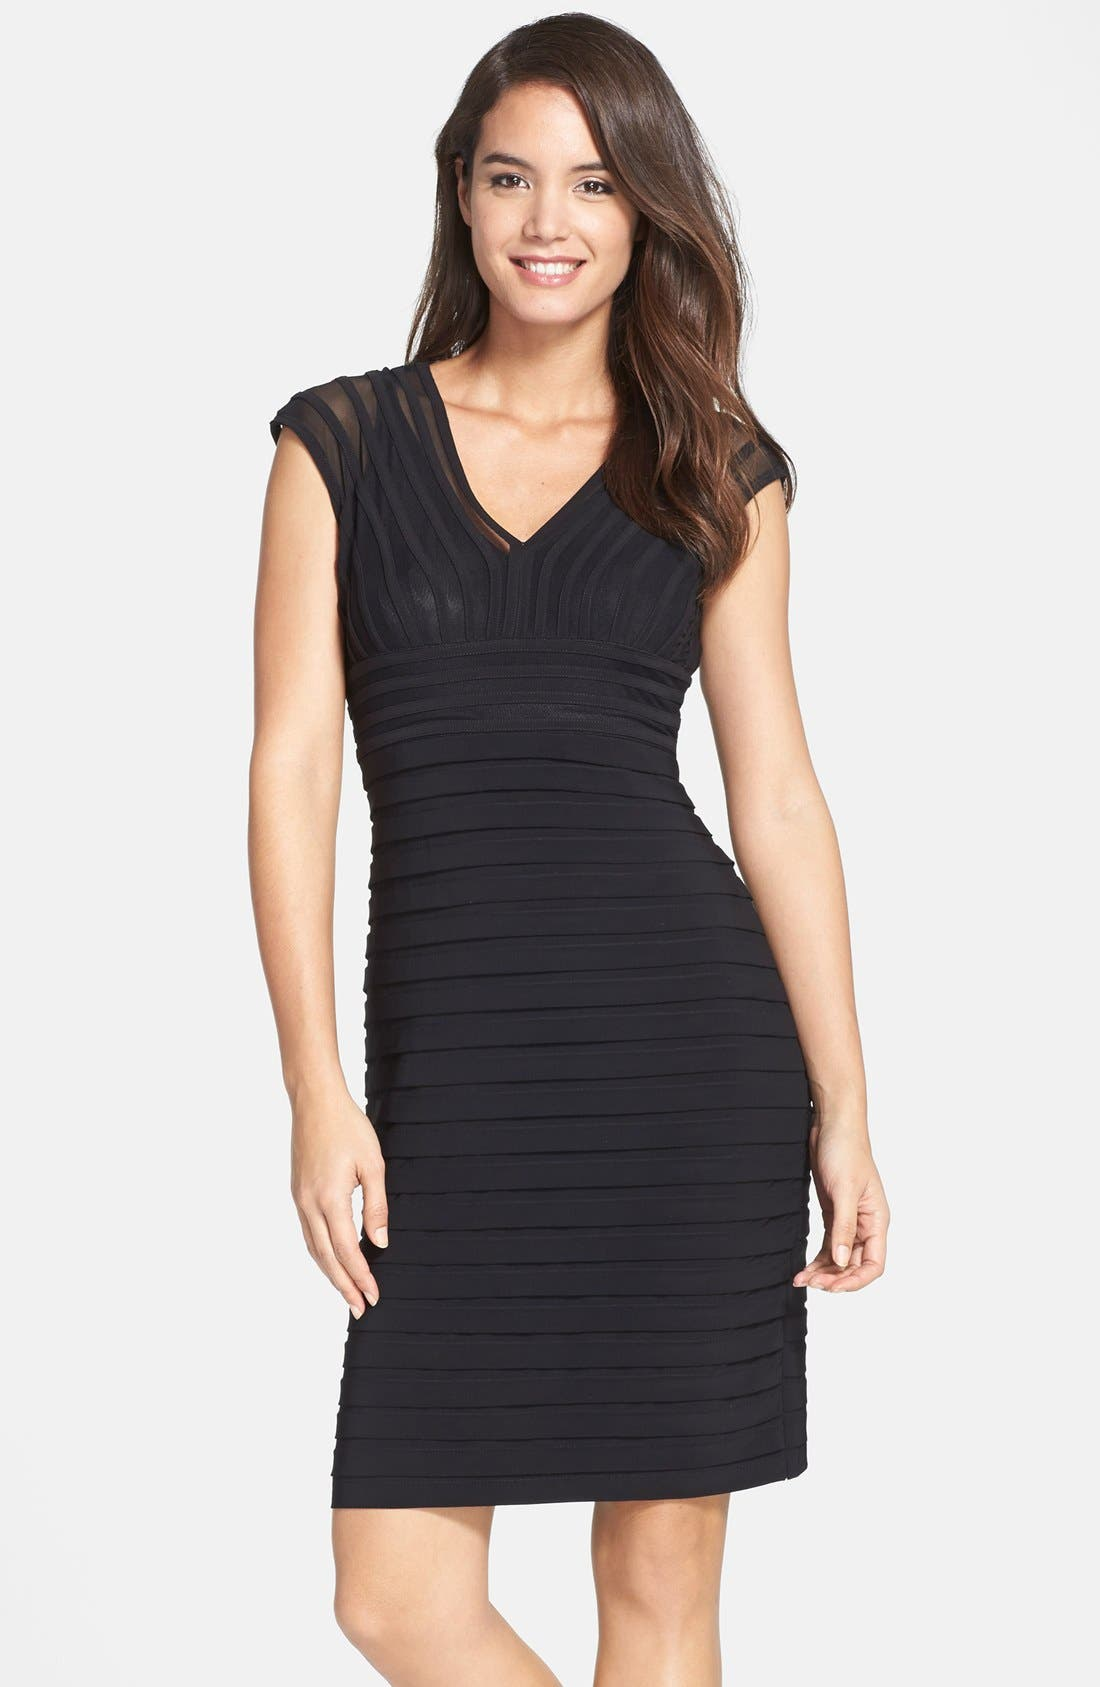 Alternate Image 1 Selected - Adrianna Papell Shutter Pleat Jersey Sheath Dress (Regular & Petite) (Nordstrom Exclusive)